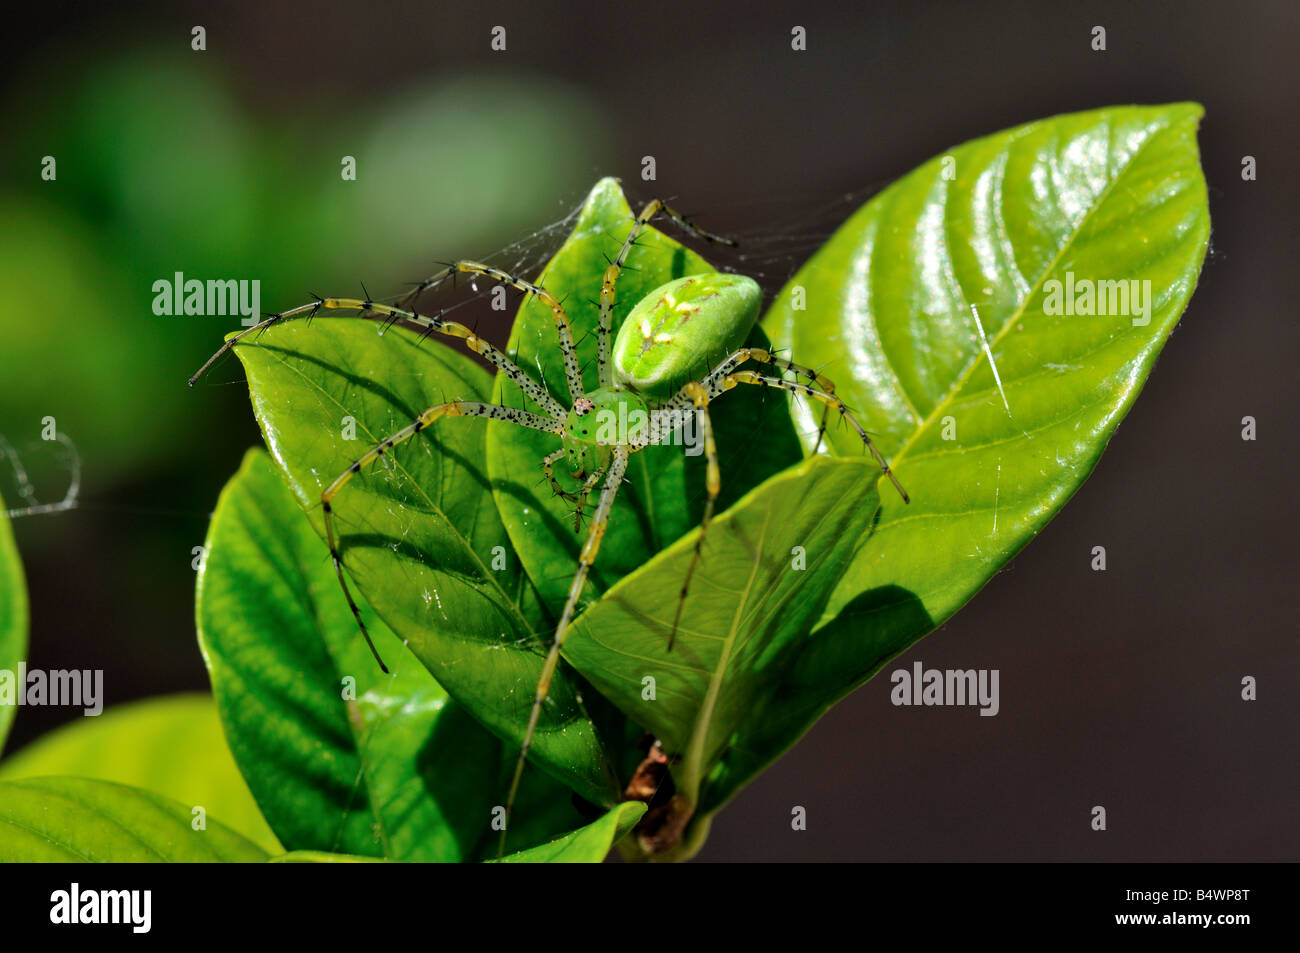 Closeup of a Green Lynx Spider (Peucetia viridans) Stock Photo